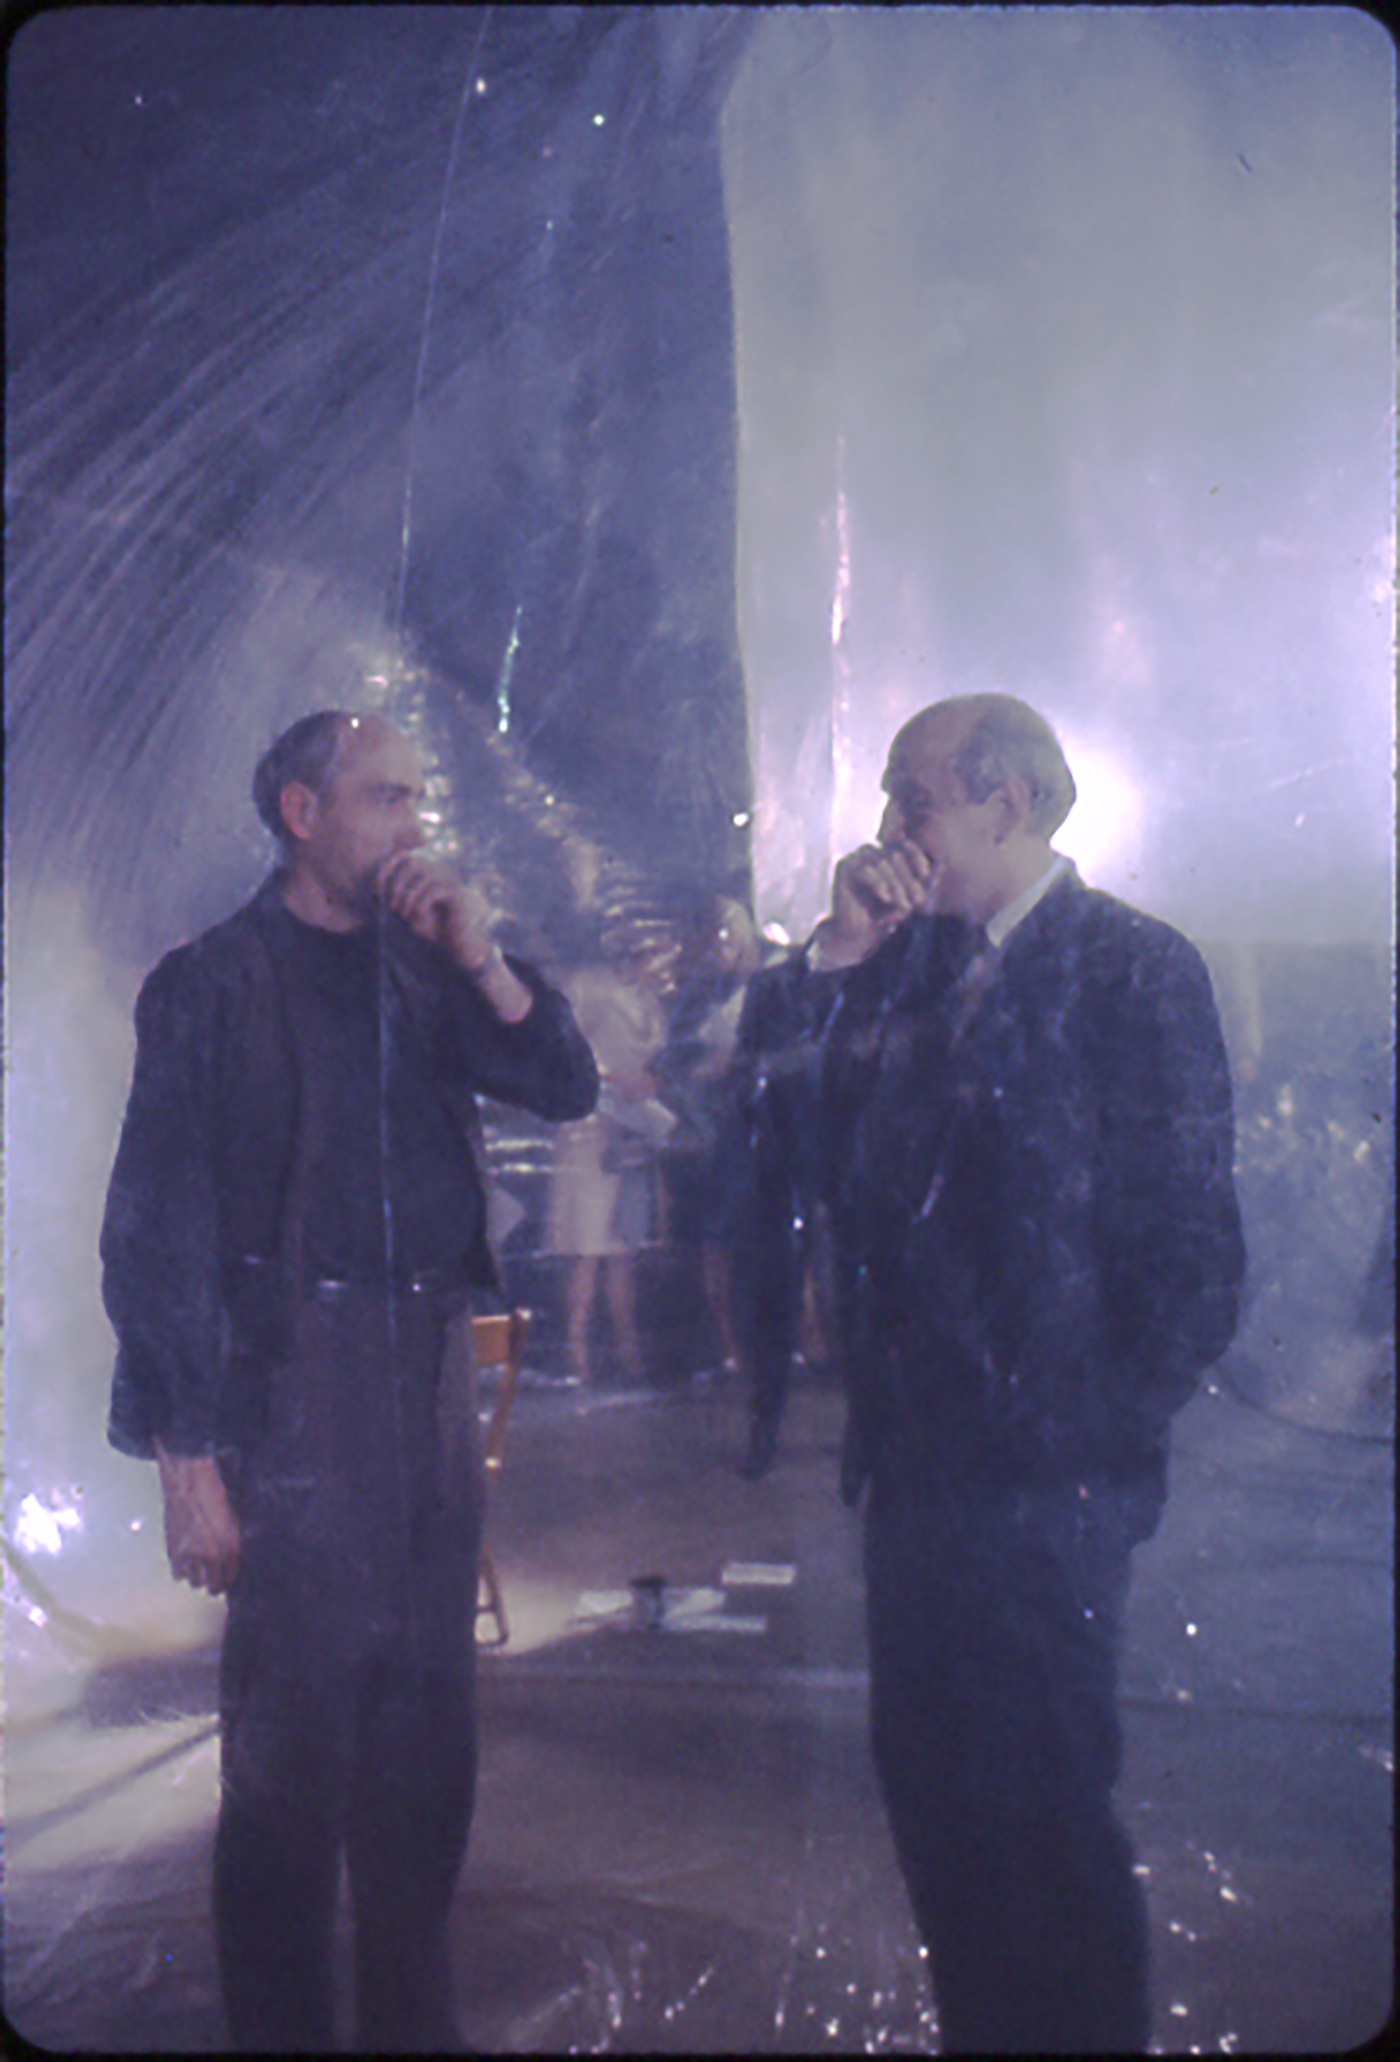 Michael Kirby and his twin brother standing as performers in Steve Paxton's inflated structure. Photo by Robert R. McElroy